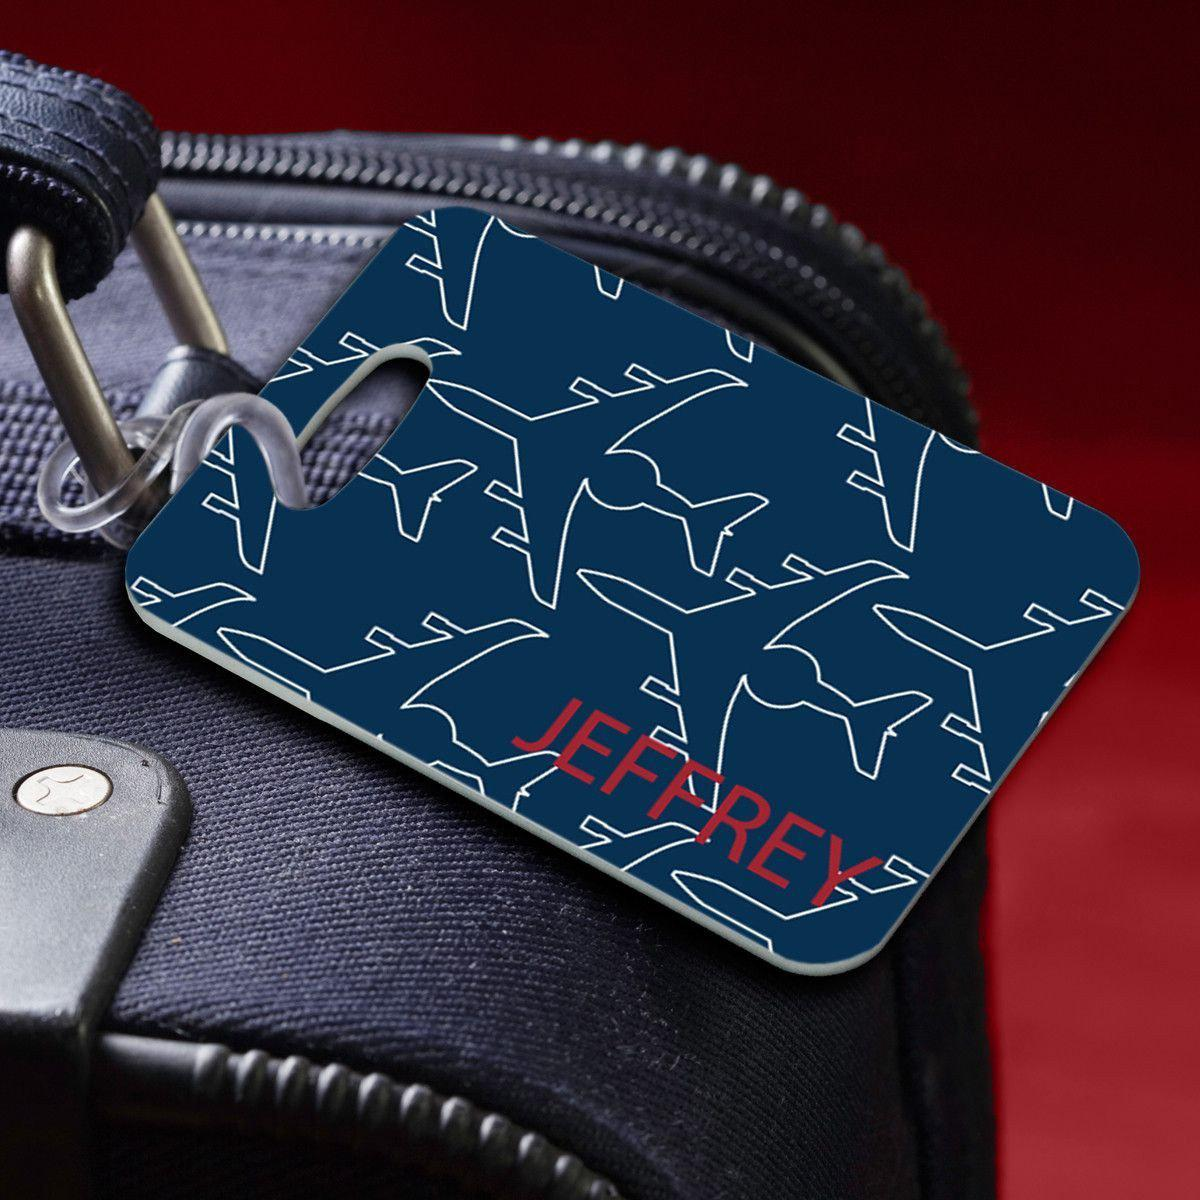 Personalized-Luggage-Tags